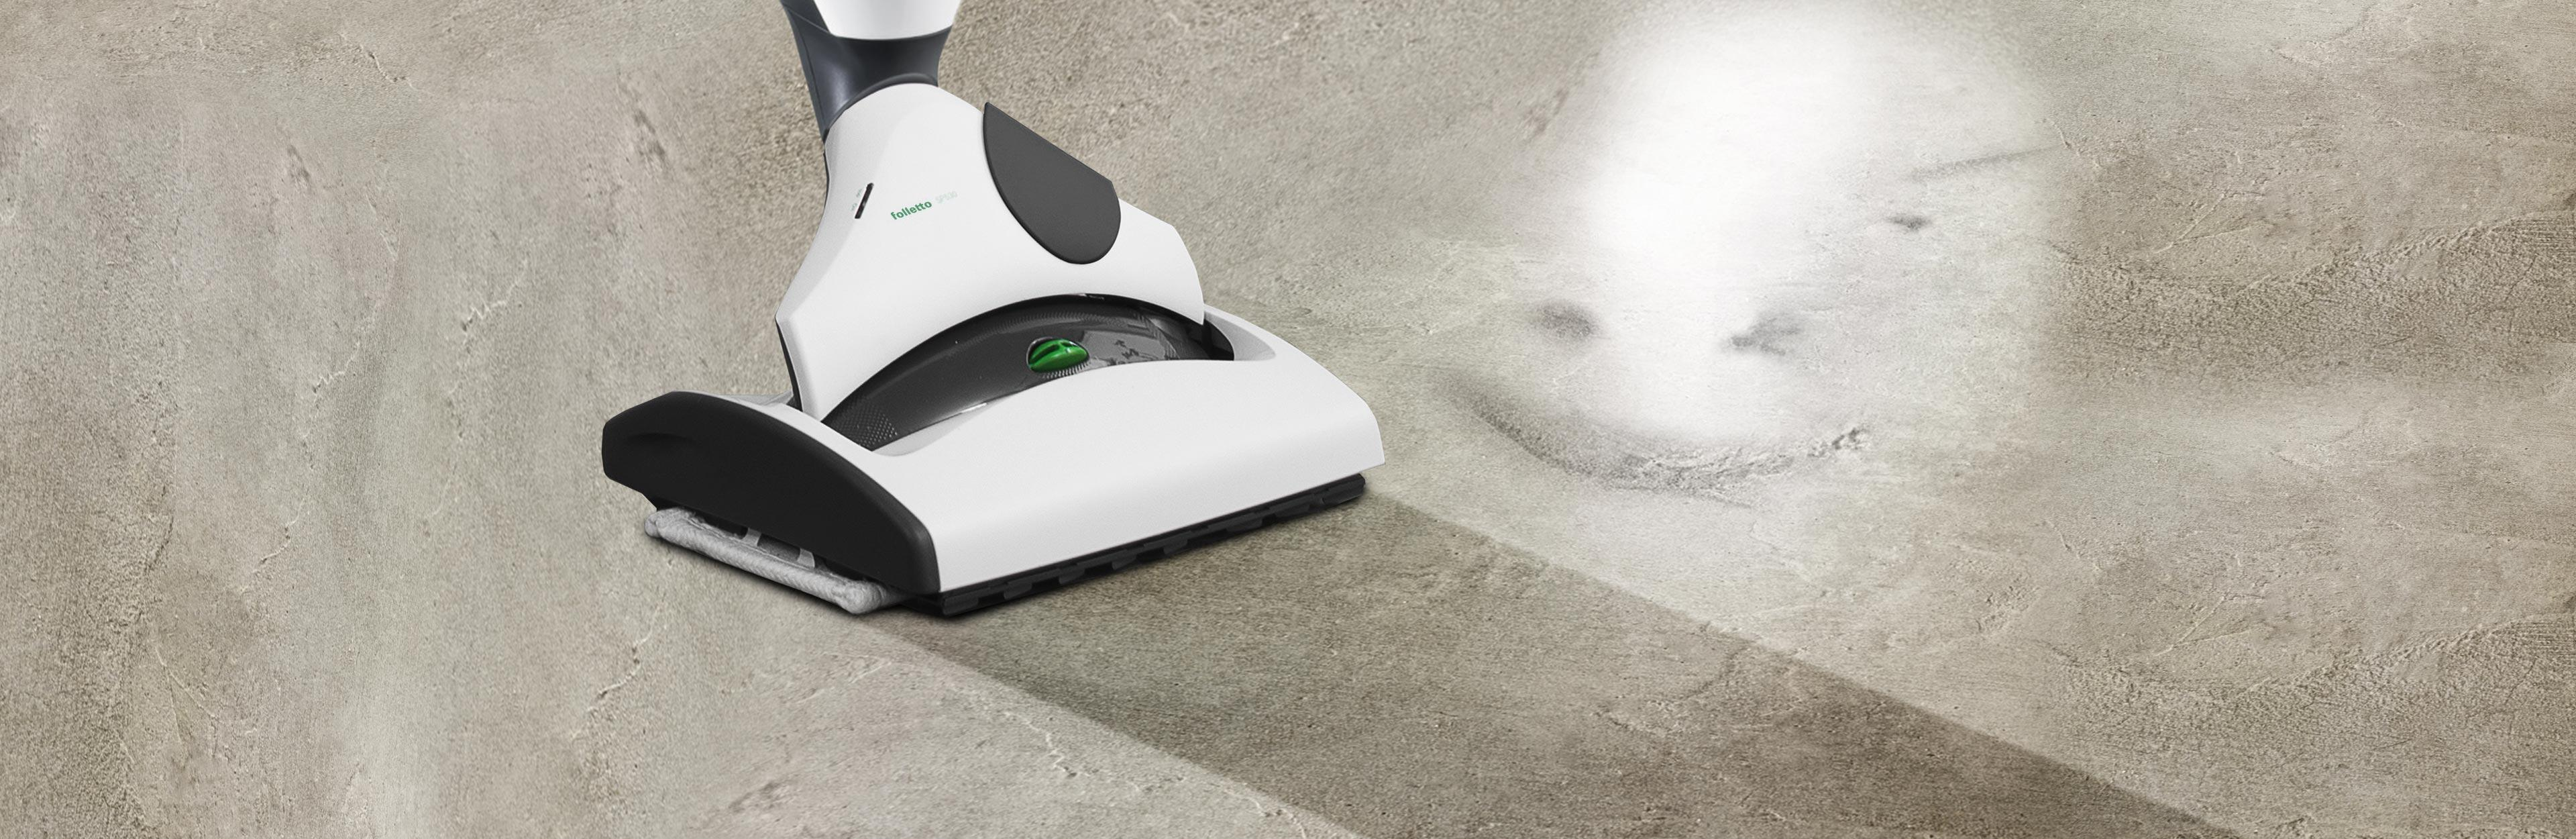 Folletto lavapavimenti pulilava vorwerk sp530 - Worker folletto ultimo modello ...